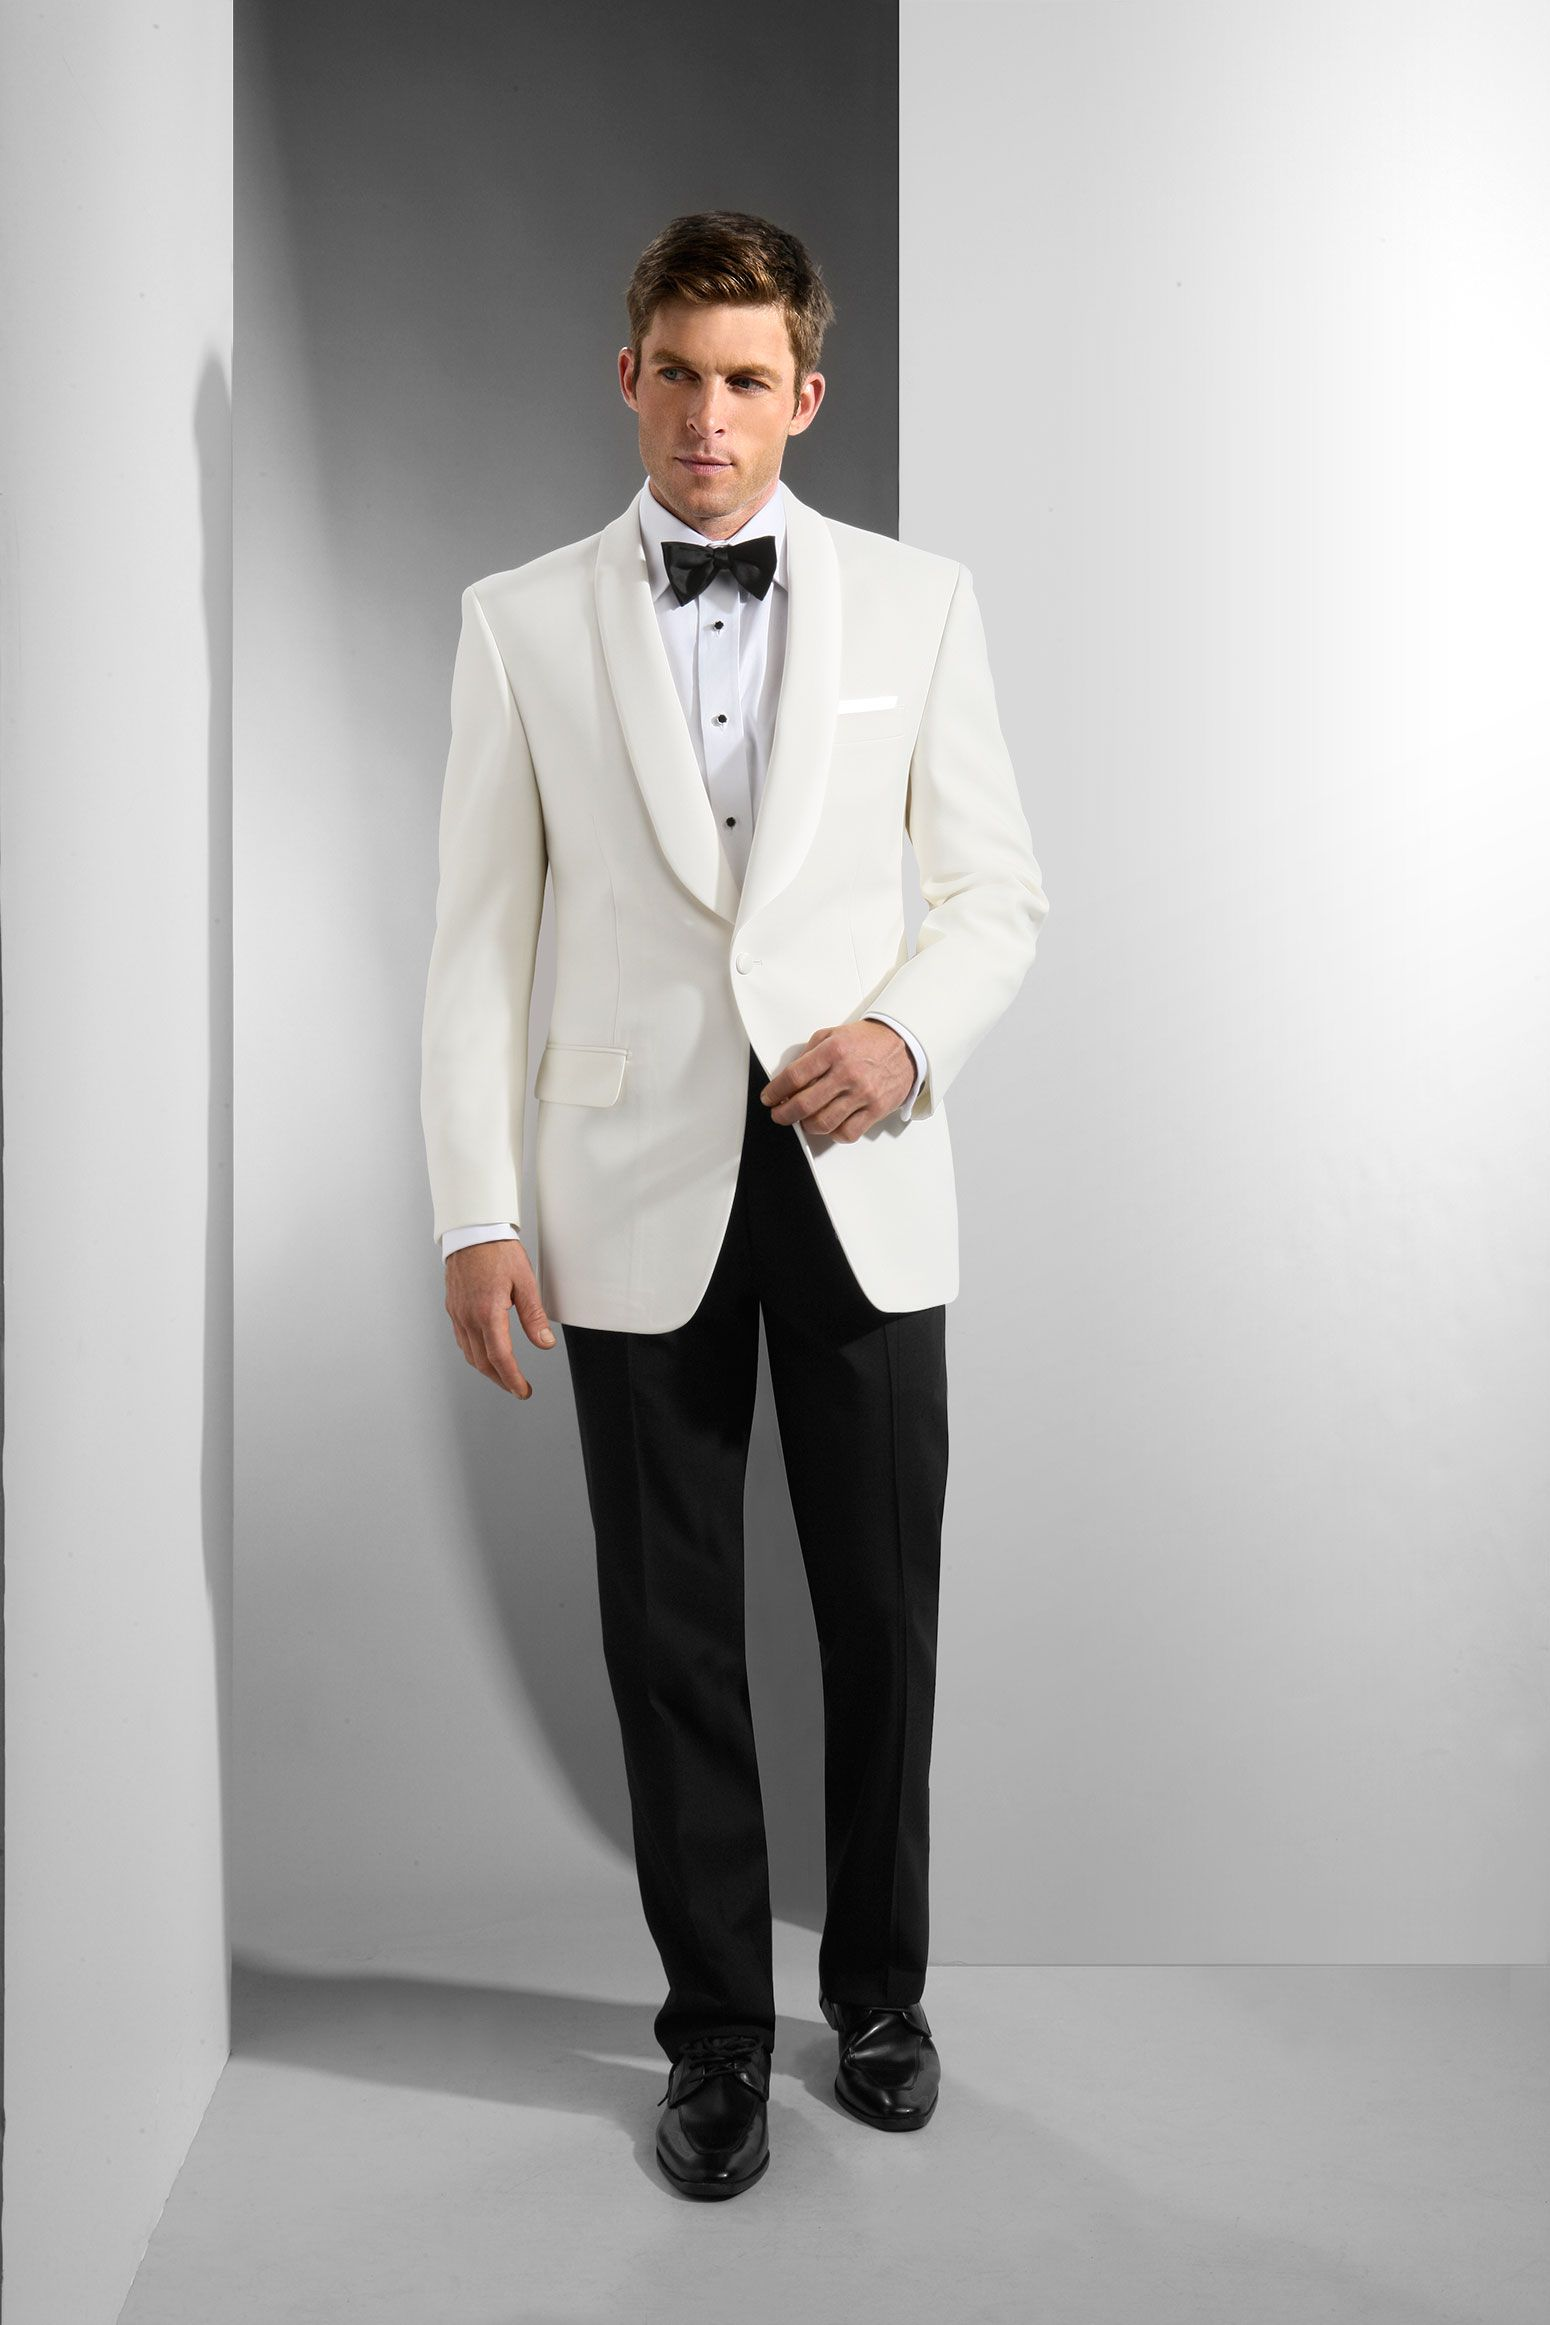 Men's White Shawl Dinner Jacket | Tuxedos for Men and Women ...